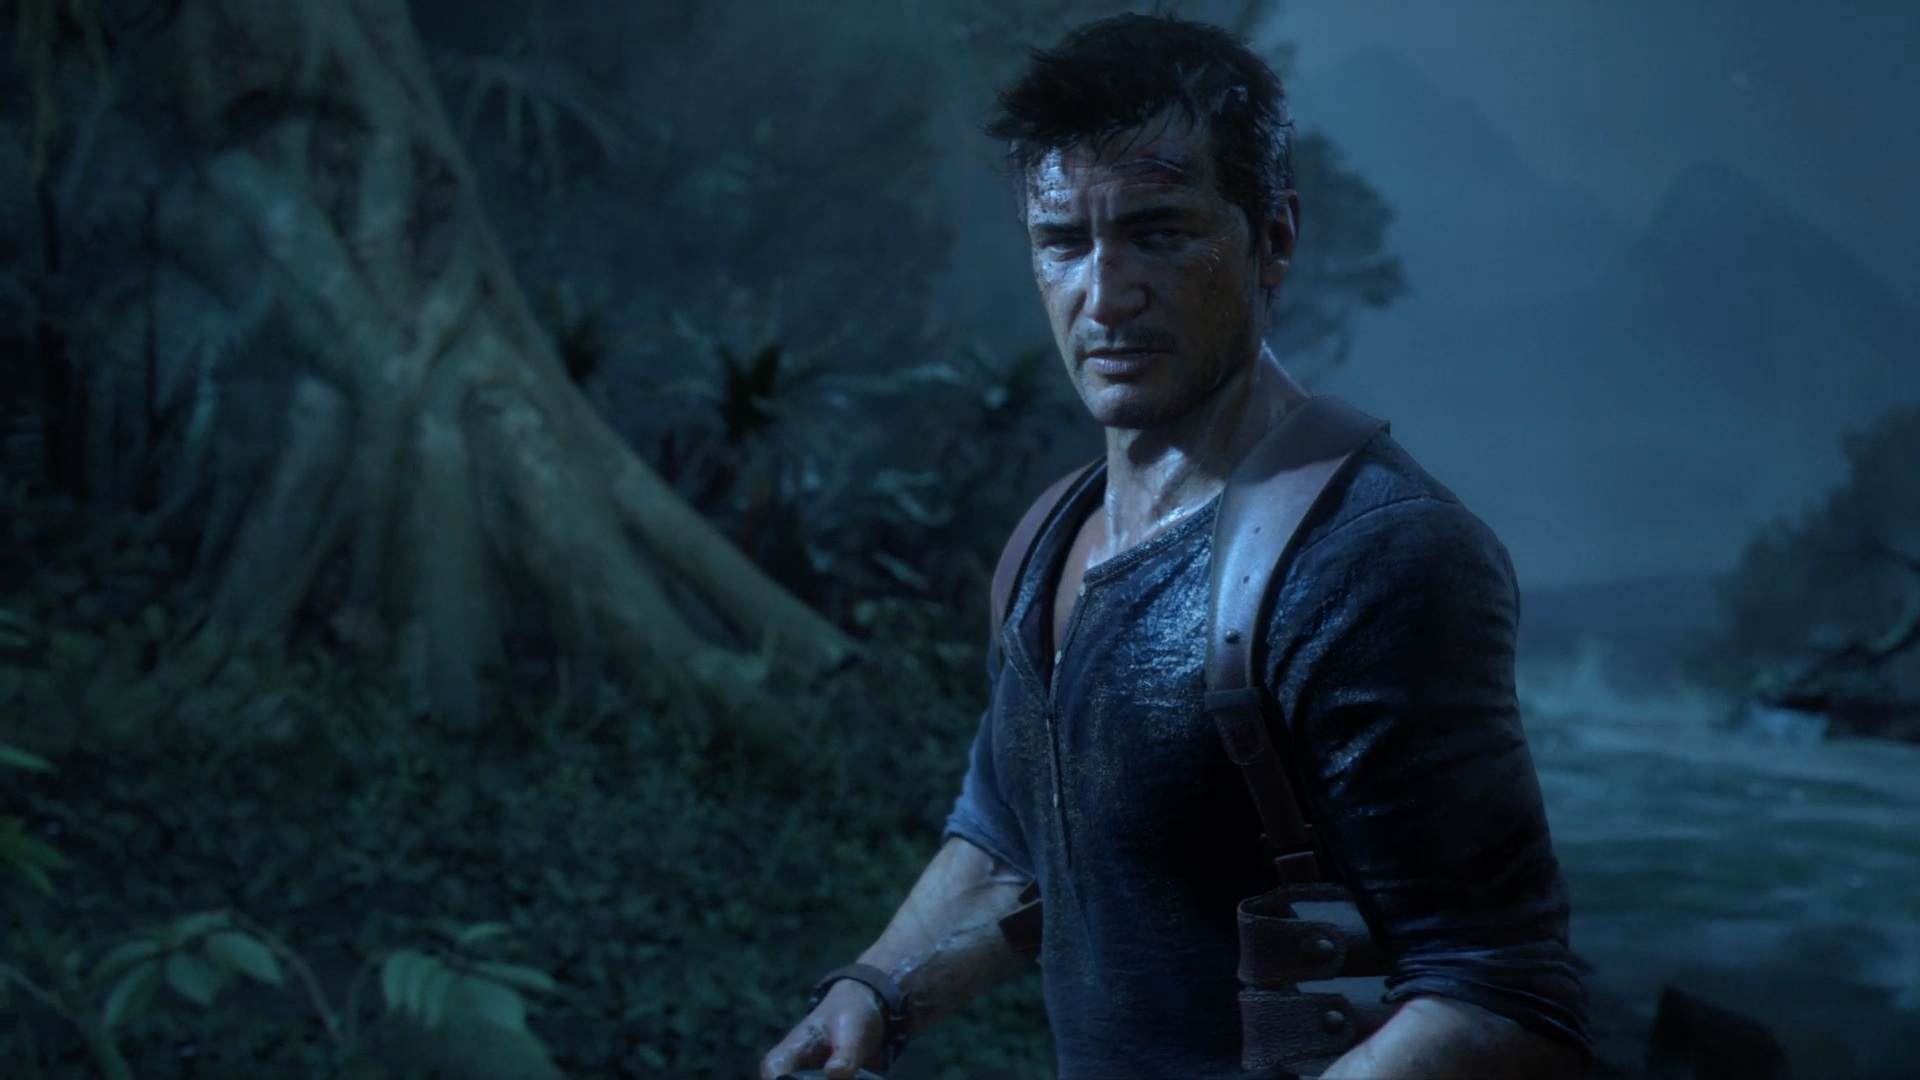 Uncharted 4 A Thiefs End Wallpaper 2 Wallpapersbq